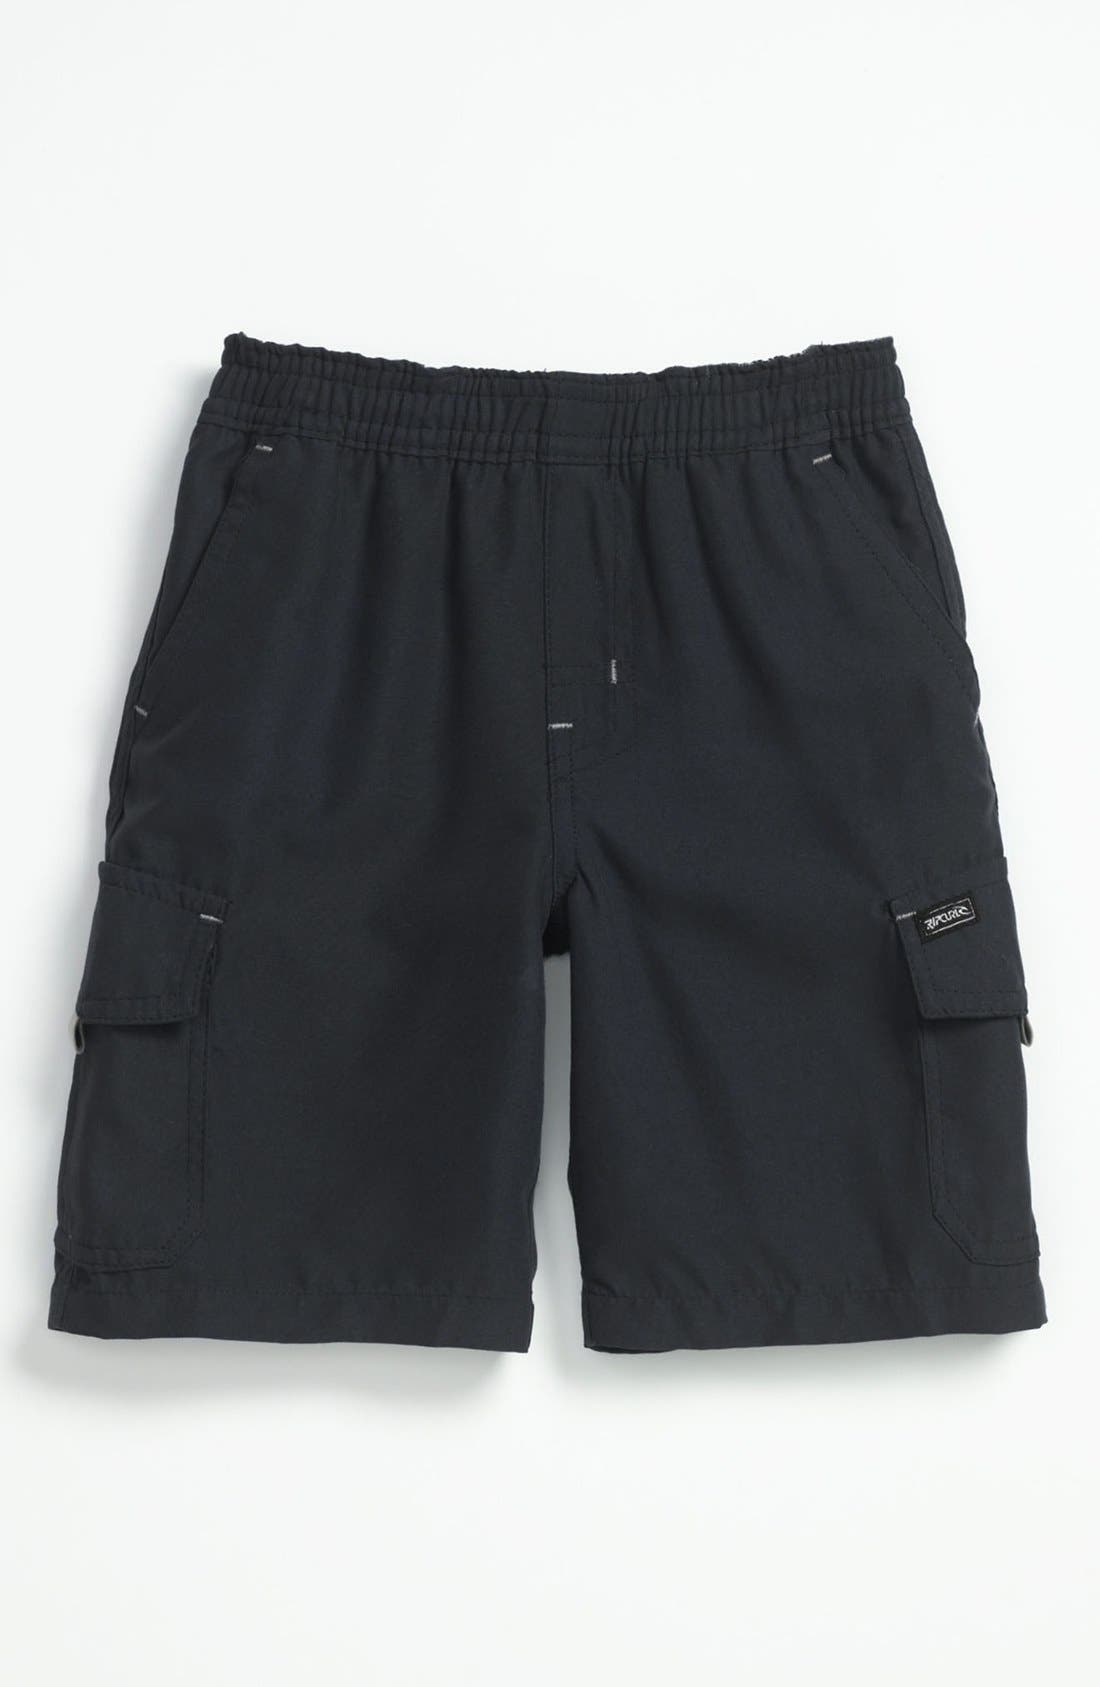 Alternate Image 1 Selected - Rip Curl 'Higgins' Shorts (Toddler)